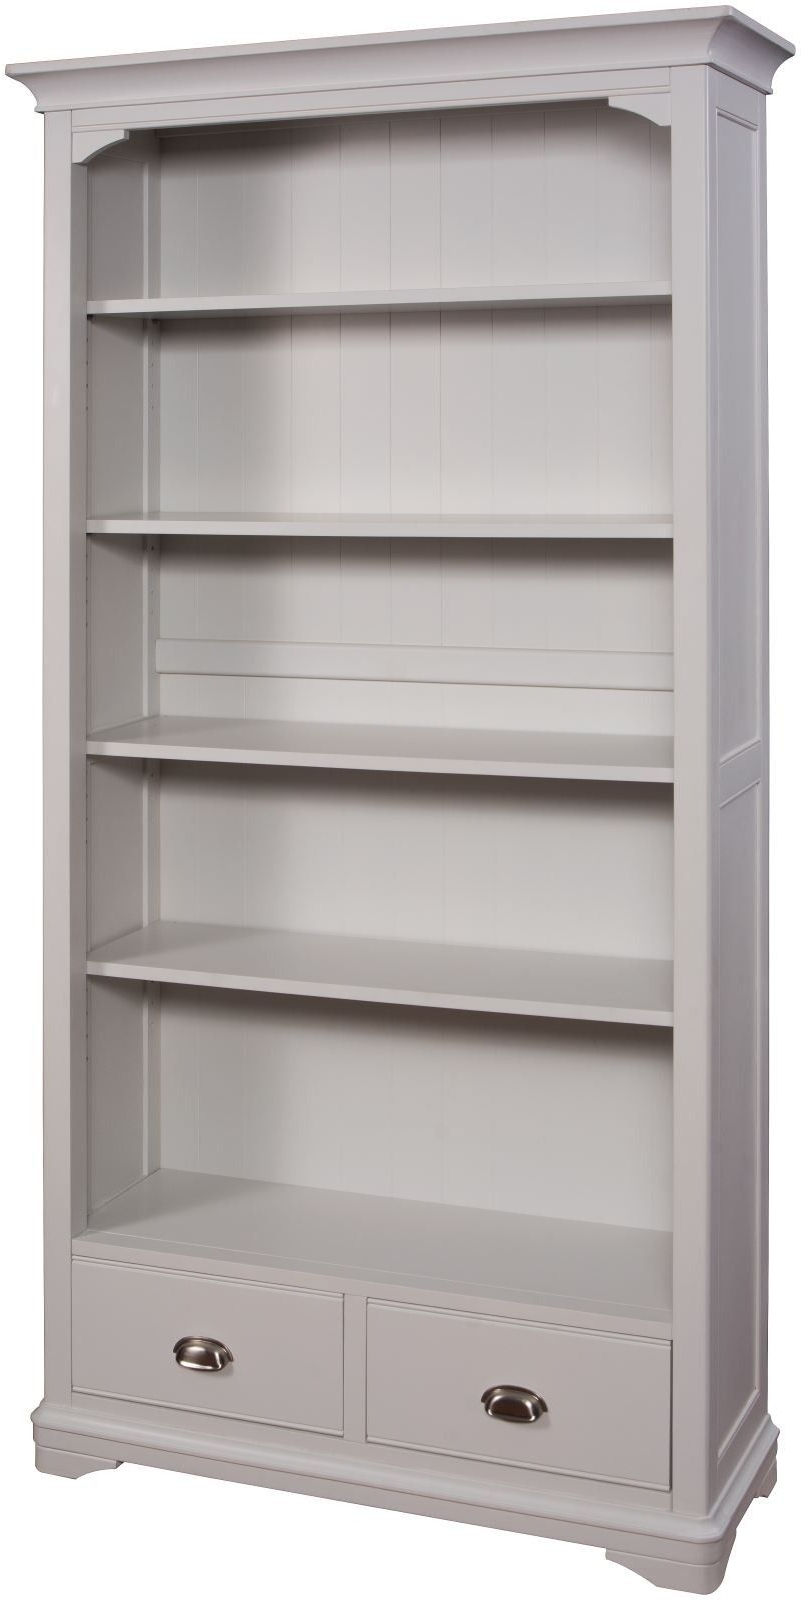 Stirring Tall Grey Bookcase Picture Design Narrow Decor Bookcases Within Most Up To Date Grey Bookcases (View 5 of 15)